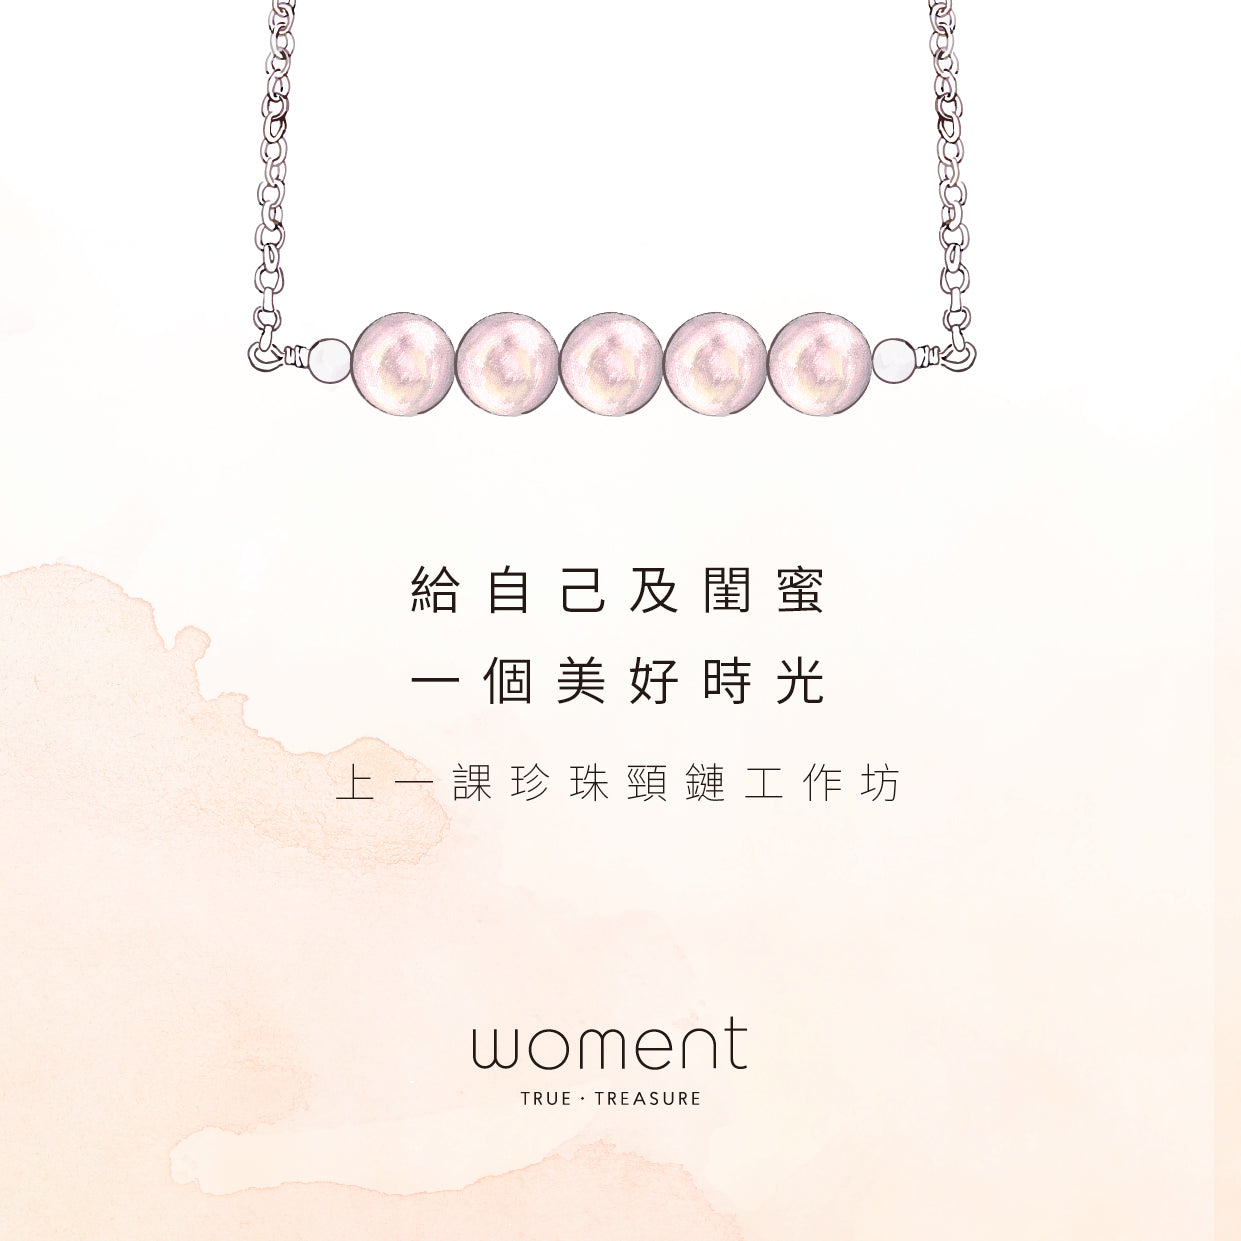 Class A - D.I.Y 珍珠頸鏈工作坊 - 09/08/2019 - Woment Designer Jewelry